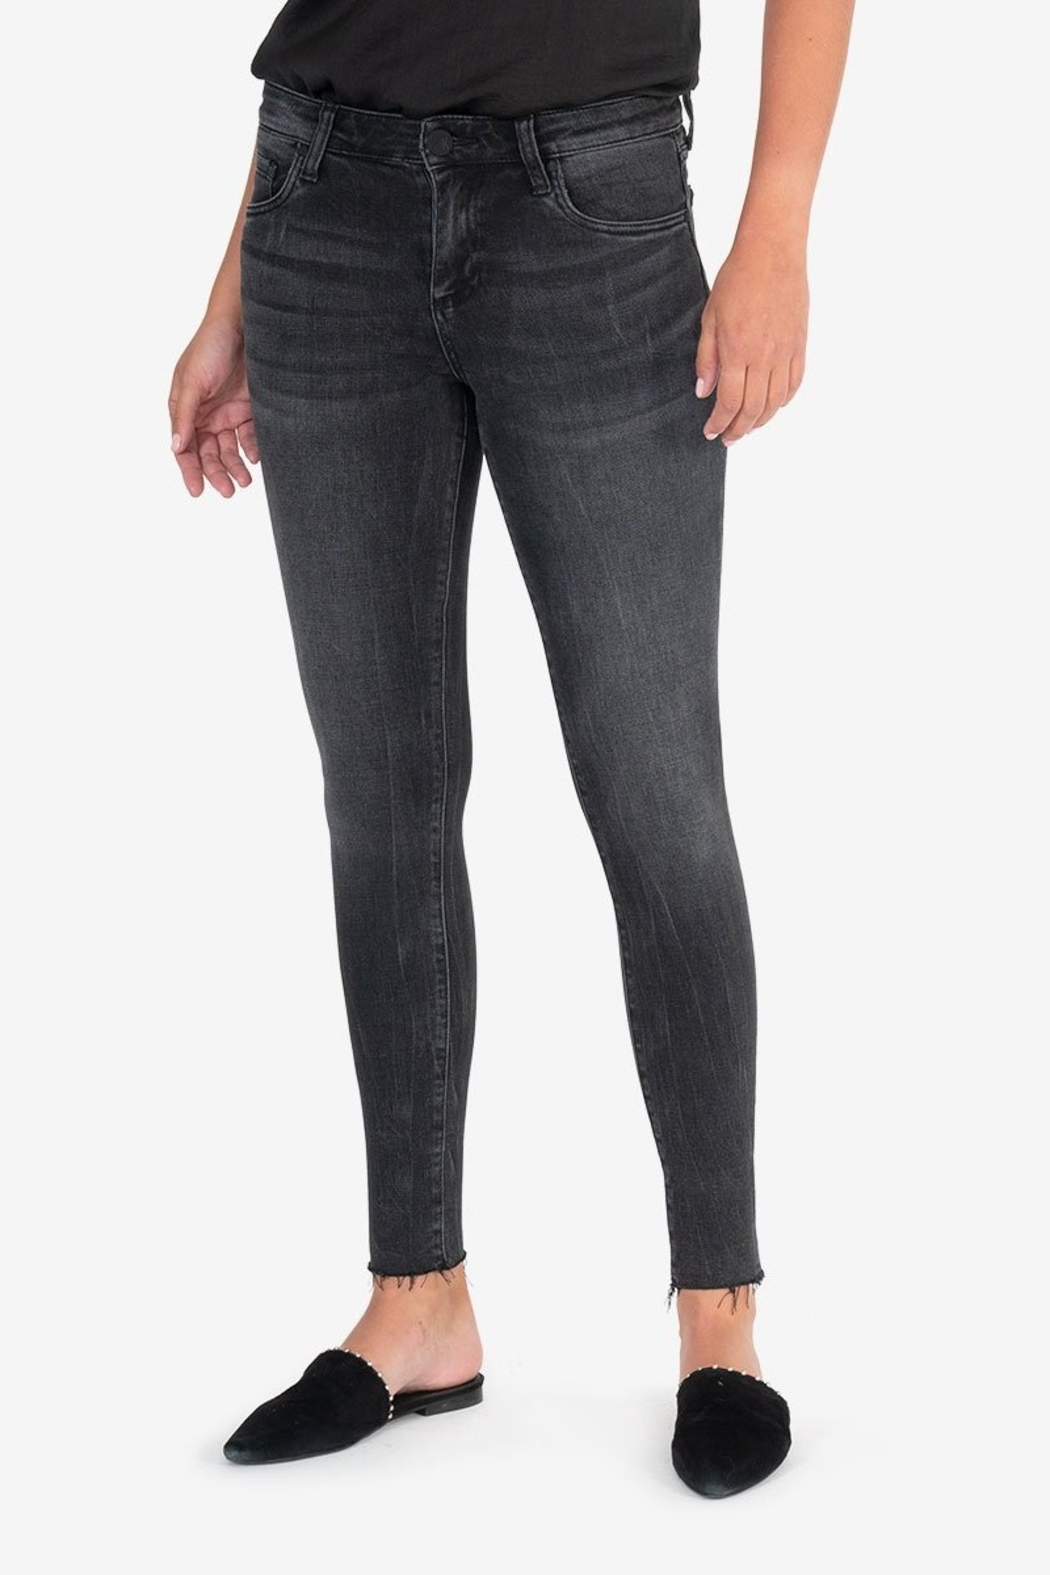 Kut from the Kloth CONNIE ANKLE RAW HEM - Main Image